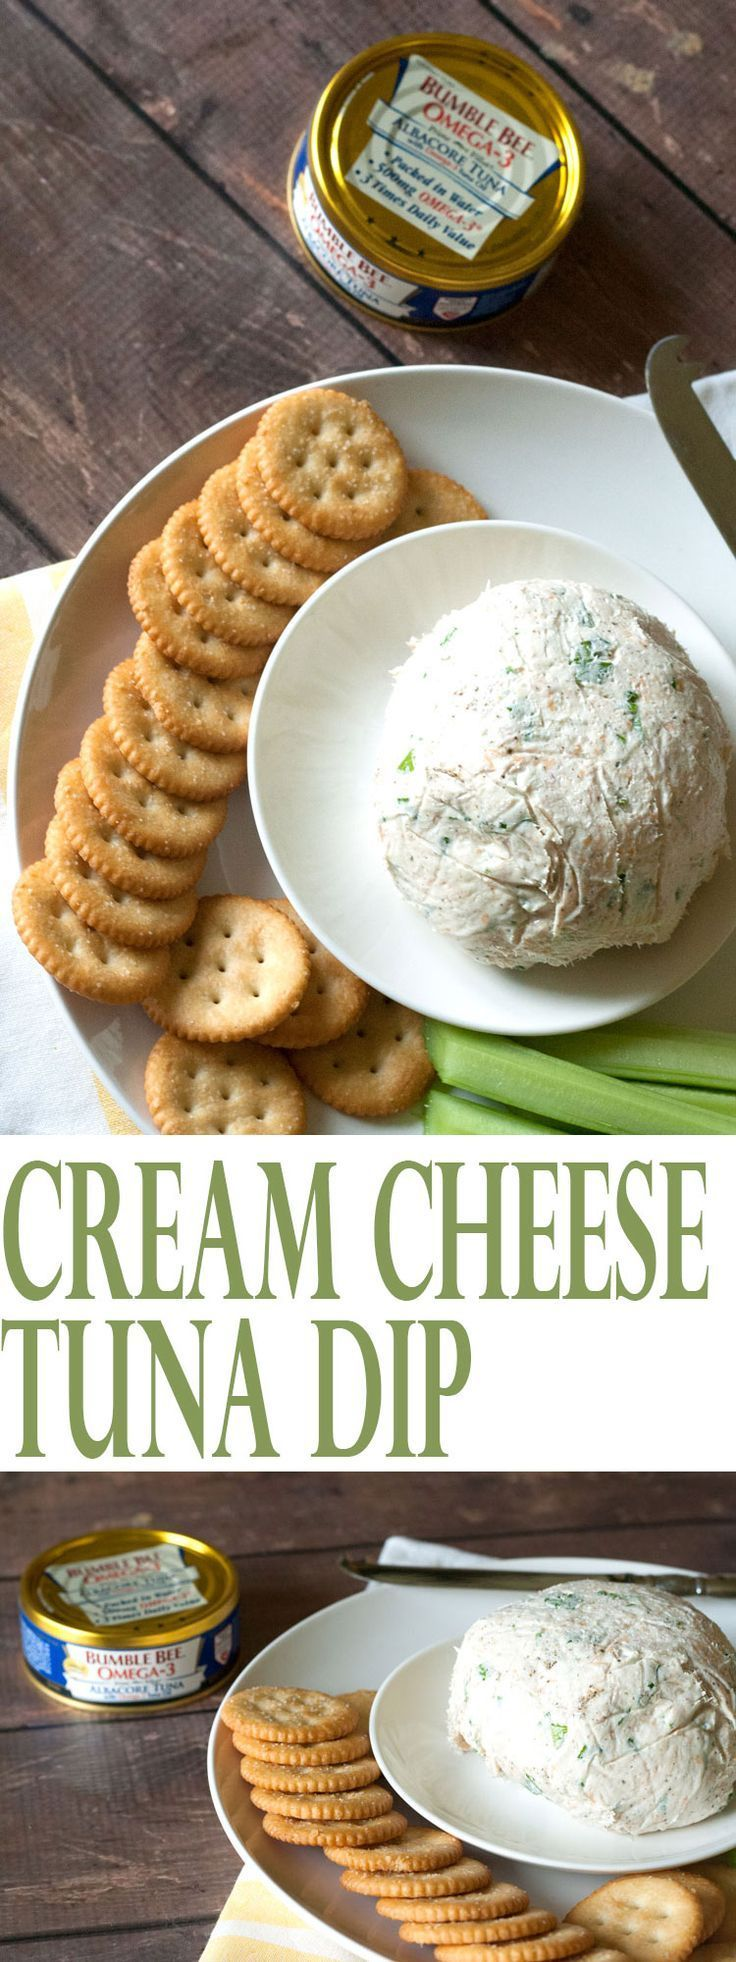 Cream Cheese Tuna Dip | AllSheCooks.com | This dip is perfect served with crackers, celery, or spread on a tortilla, rolled up and sliced into pinwheels. Yum!  #TunaStrong #CG @Bumble Bee Seafoods